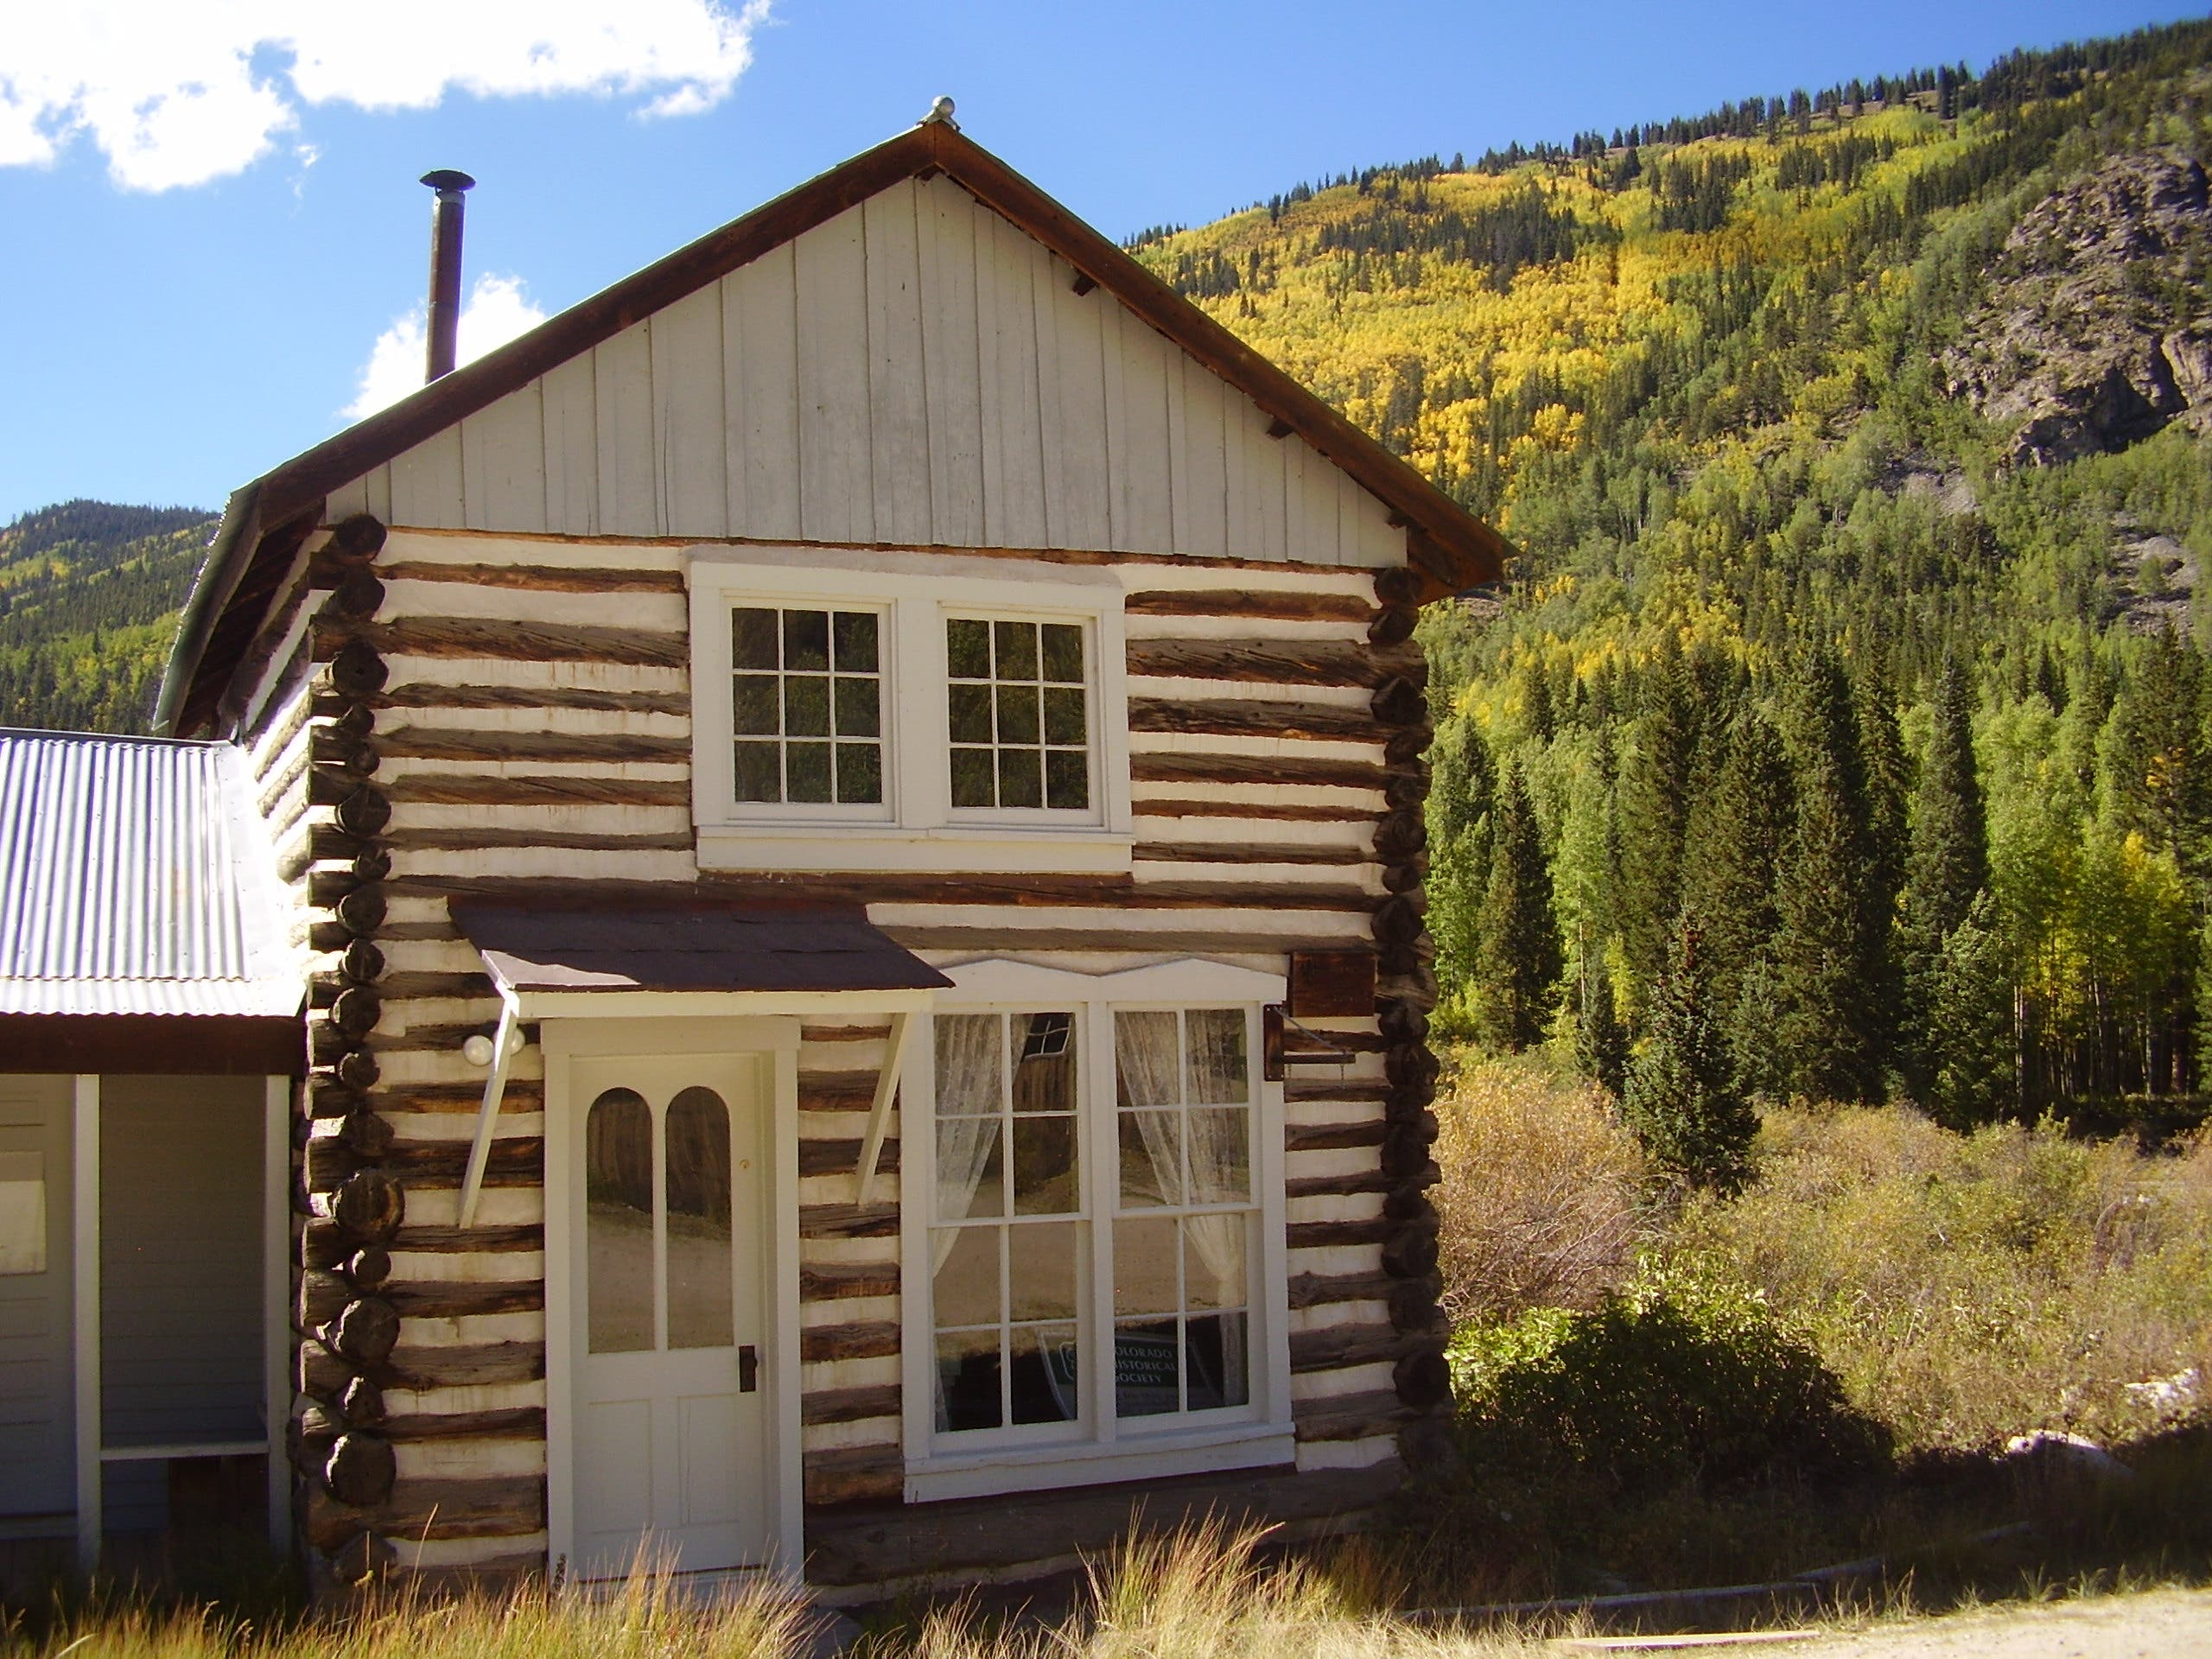 Tiny house in a landscape for St elmo colorado cabins